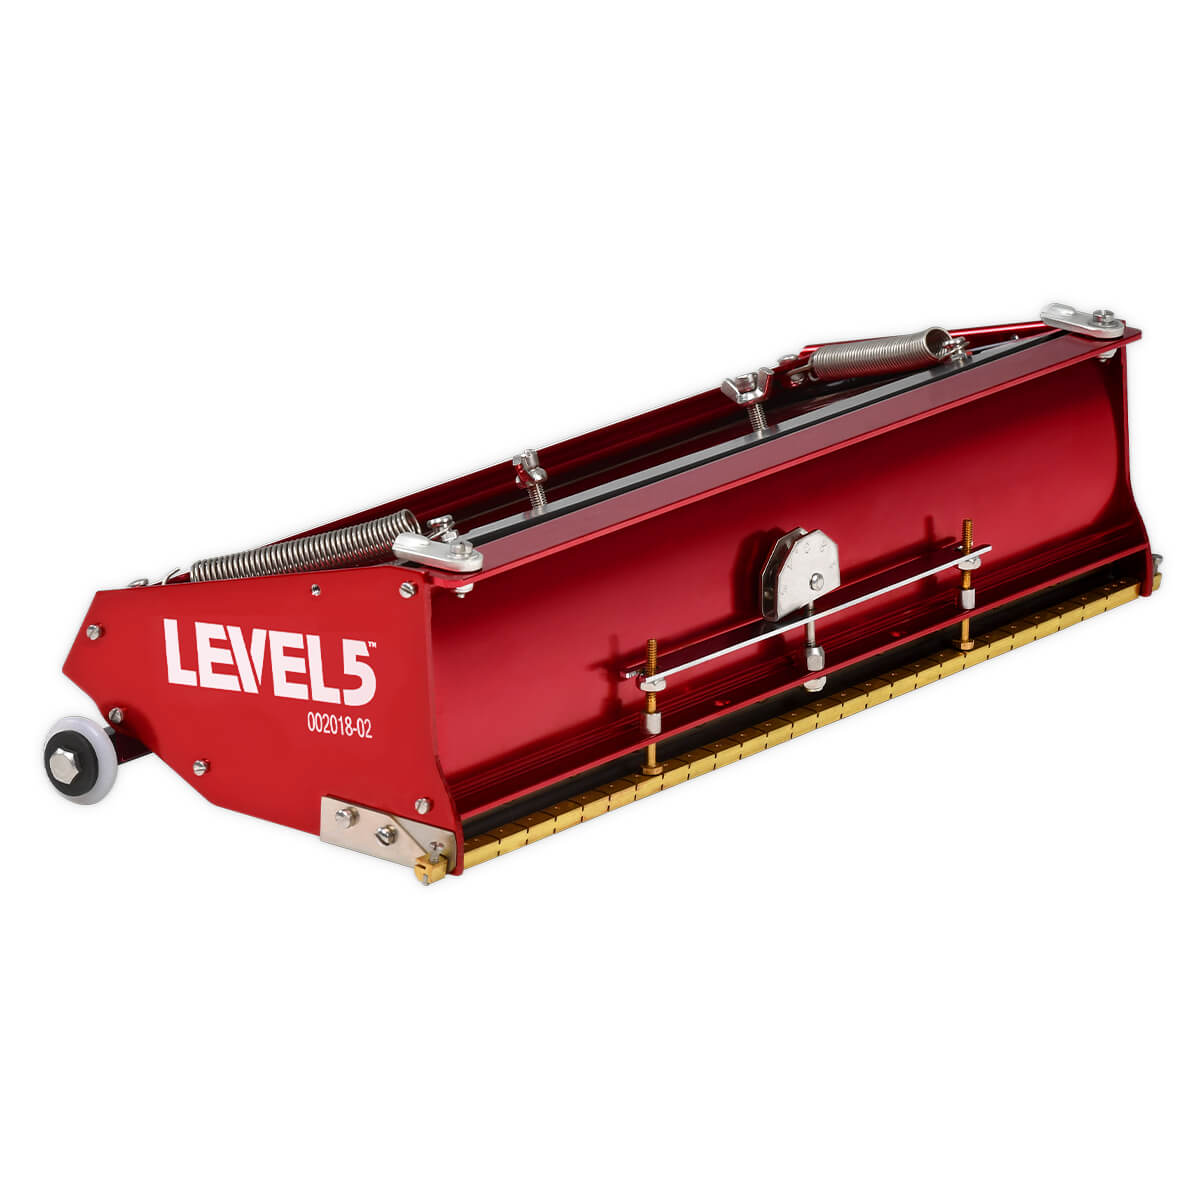 LEVEL5 14-Inch Drywall Flat Box | 4-770